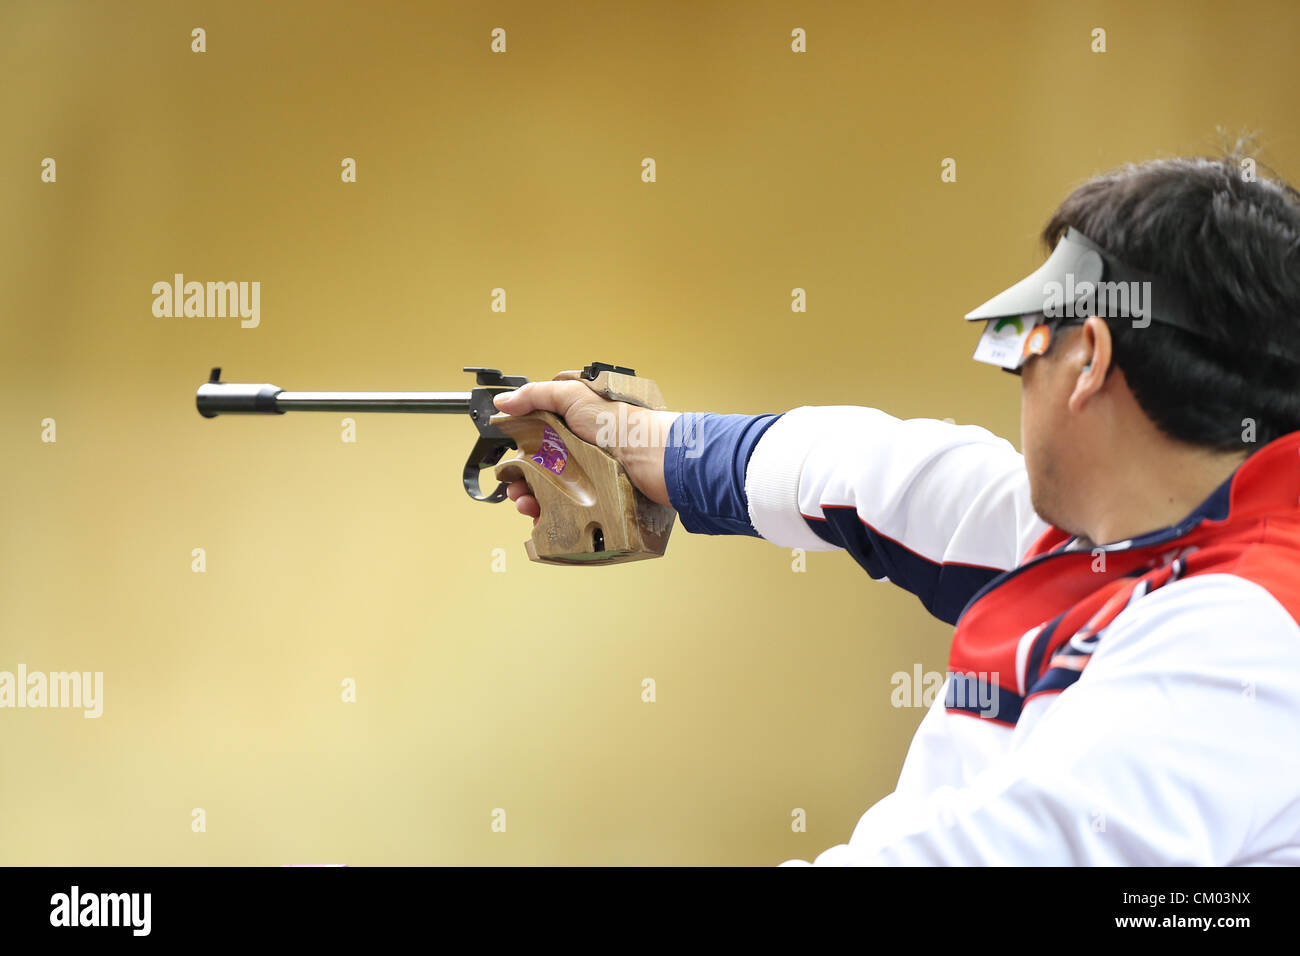 06.09.2012 London, England. Mixed P4-50m Pistol-SH1 Final. S PARK (KOR) in action during Day 7 of the London 2012 - Stock Image